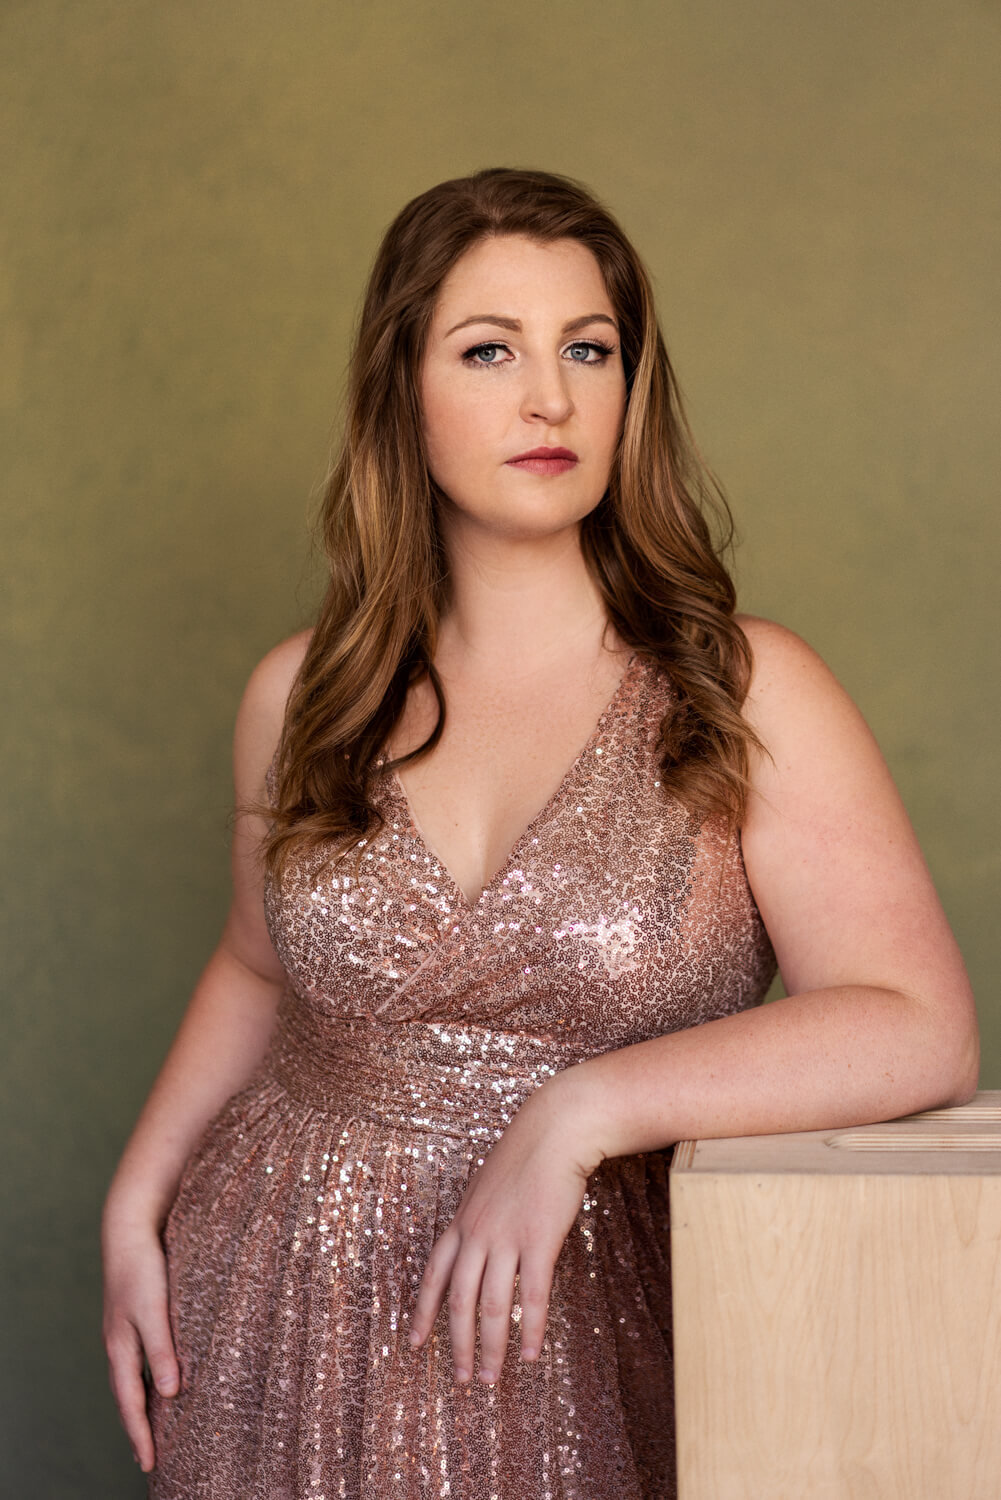 Portrait posing on applebox with glittery glamour dress